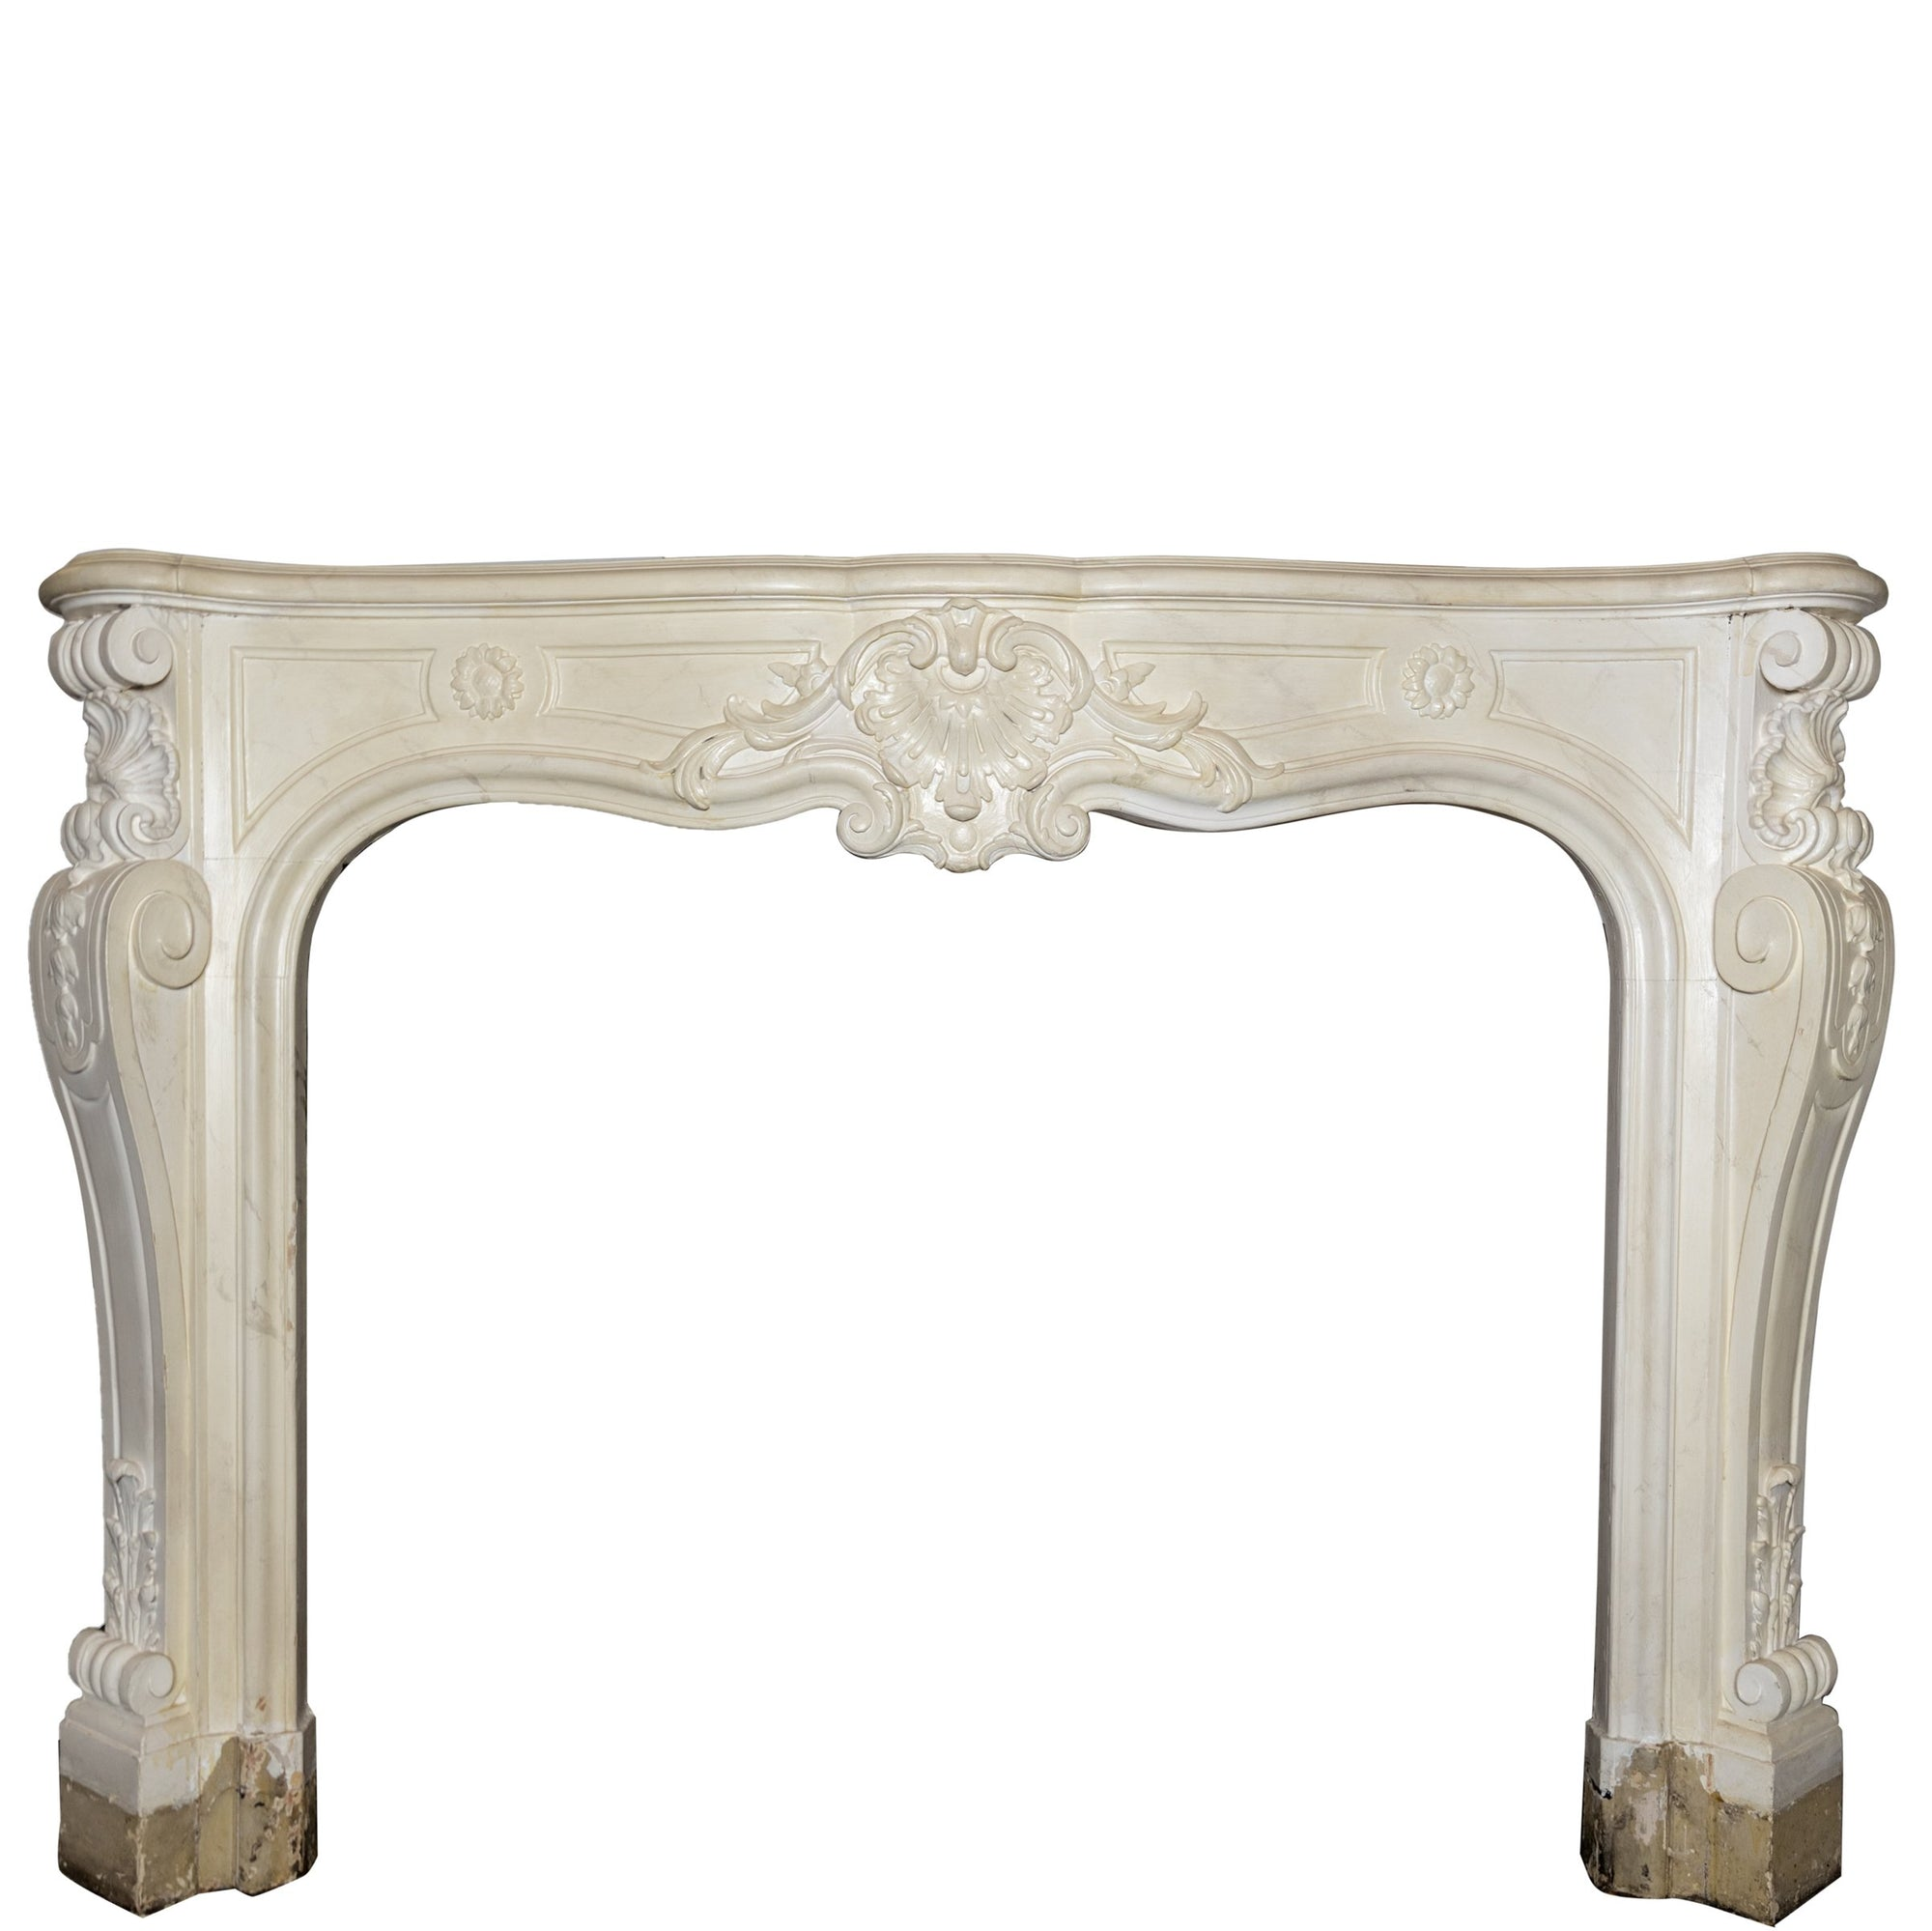 Antique Victorian Louis Style Wooden Fireplace Surround